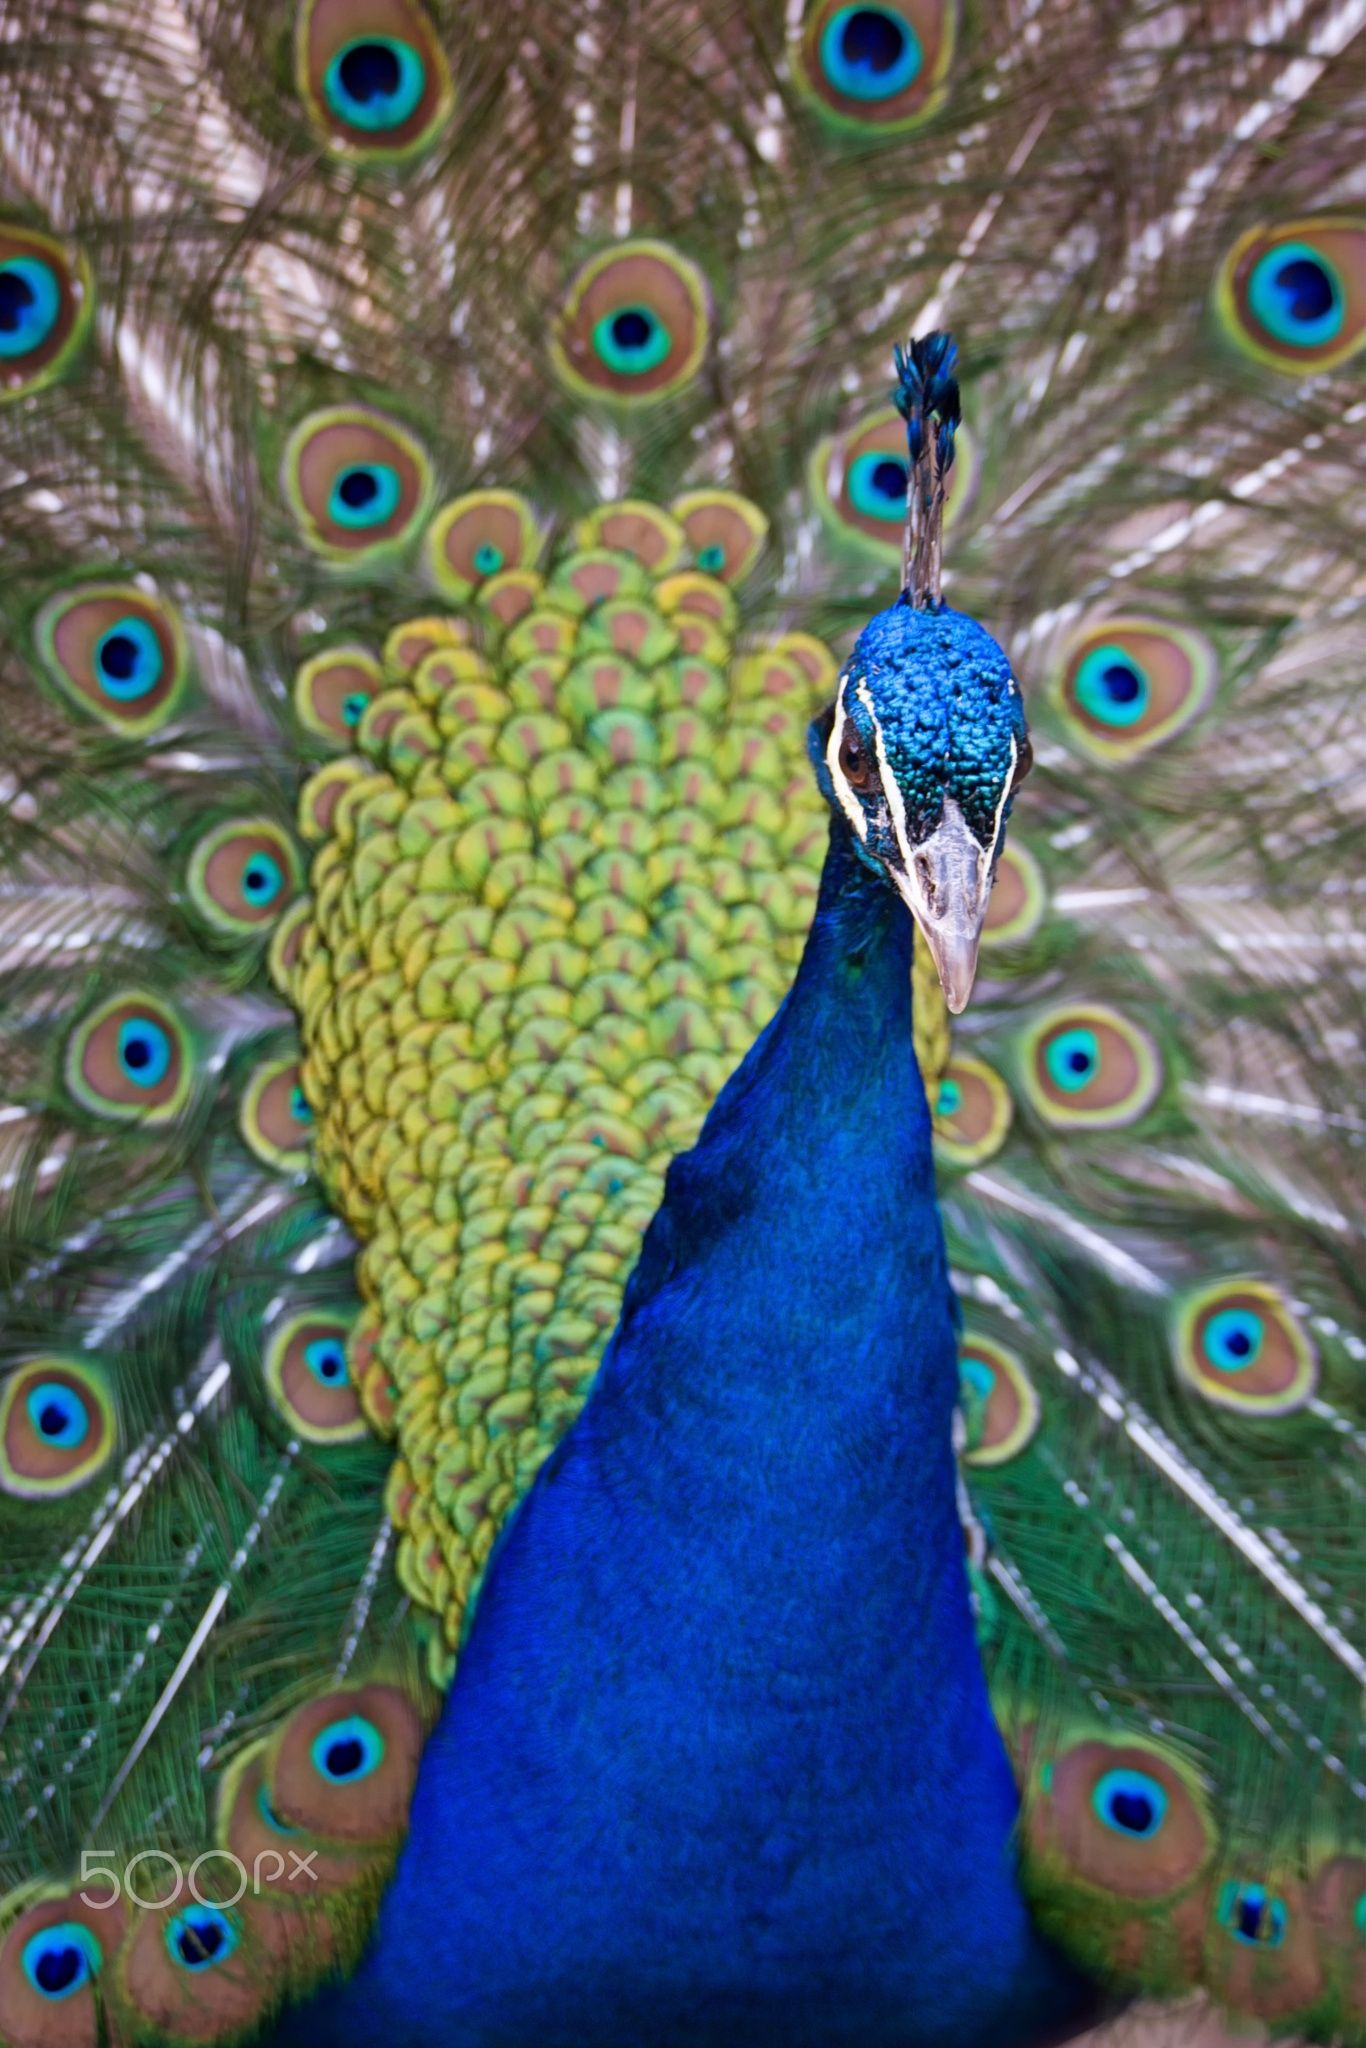 """Peafowl (Pavo cristatus) - Lovely coloring male <a href=""""https://www.facebook.com/OndrejChvatalFotograf/"""">Facebook</a> / <a href=""""https://www.ondrejchvatal.cz"""">Ondrej Chvatal</a>"""